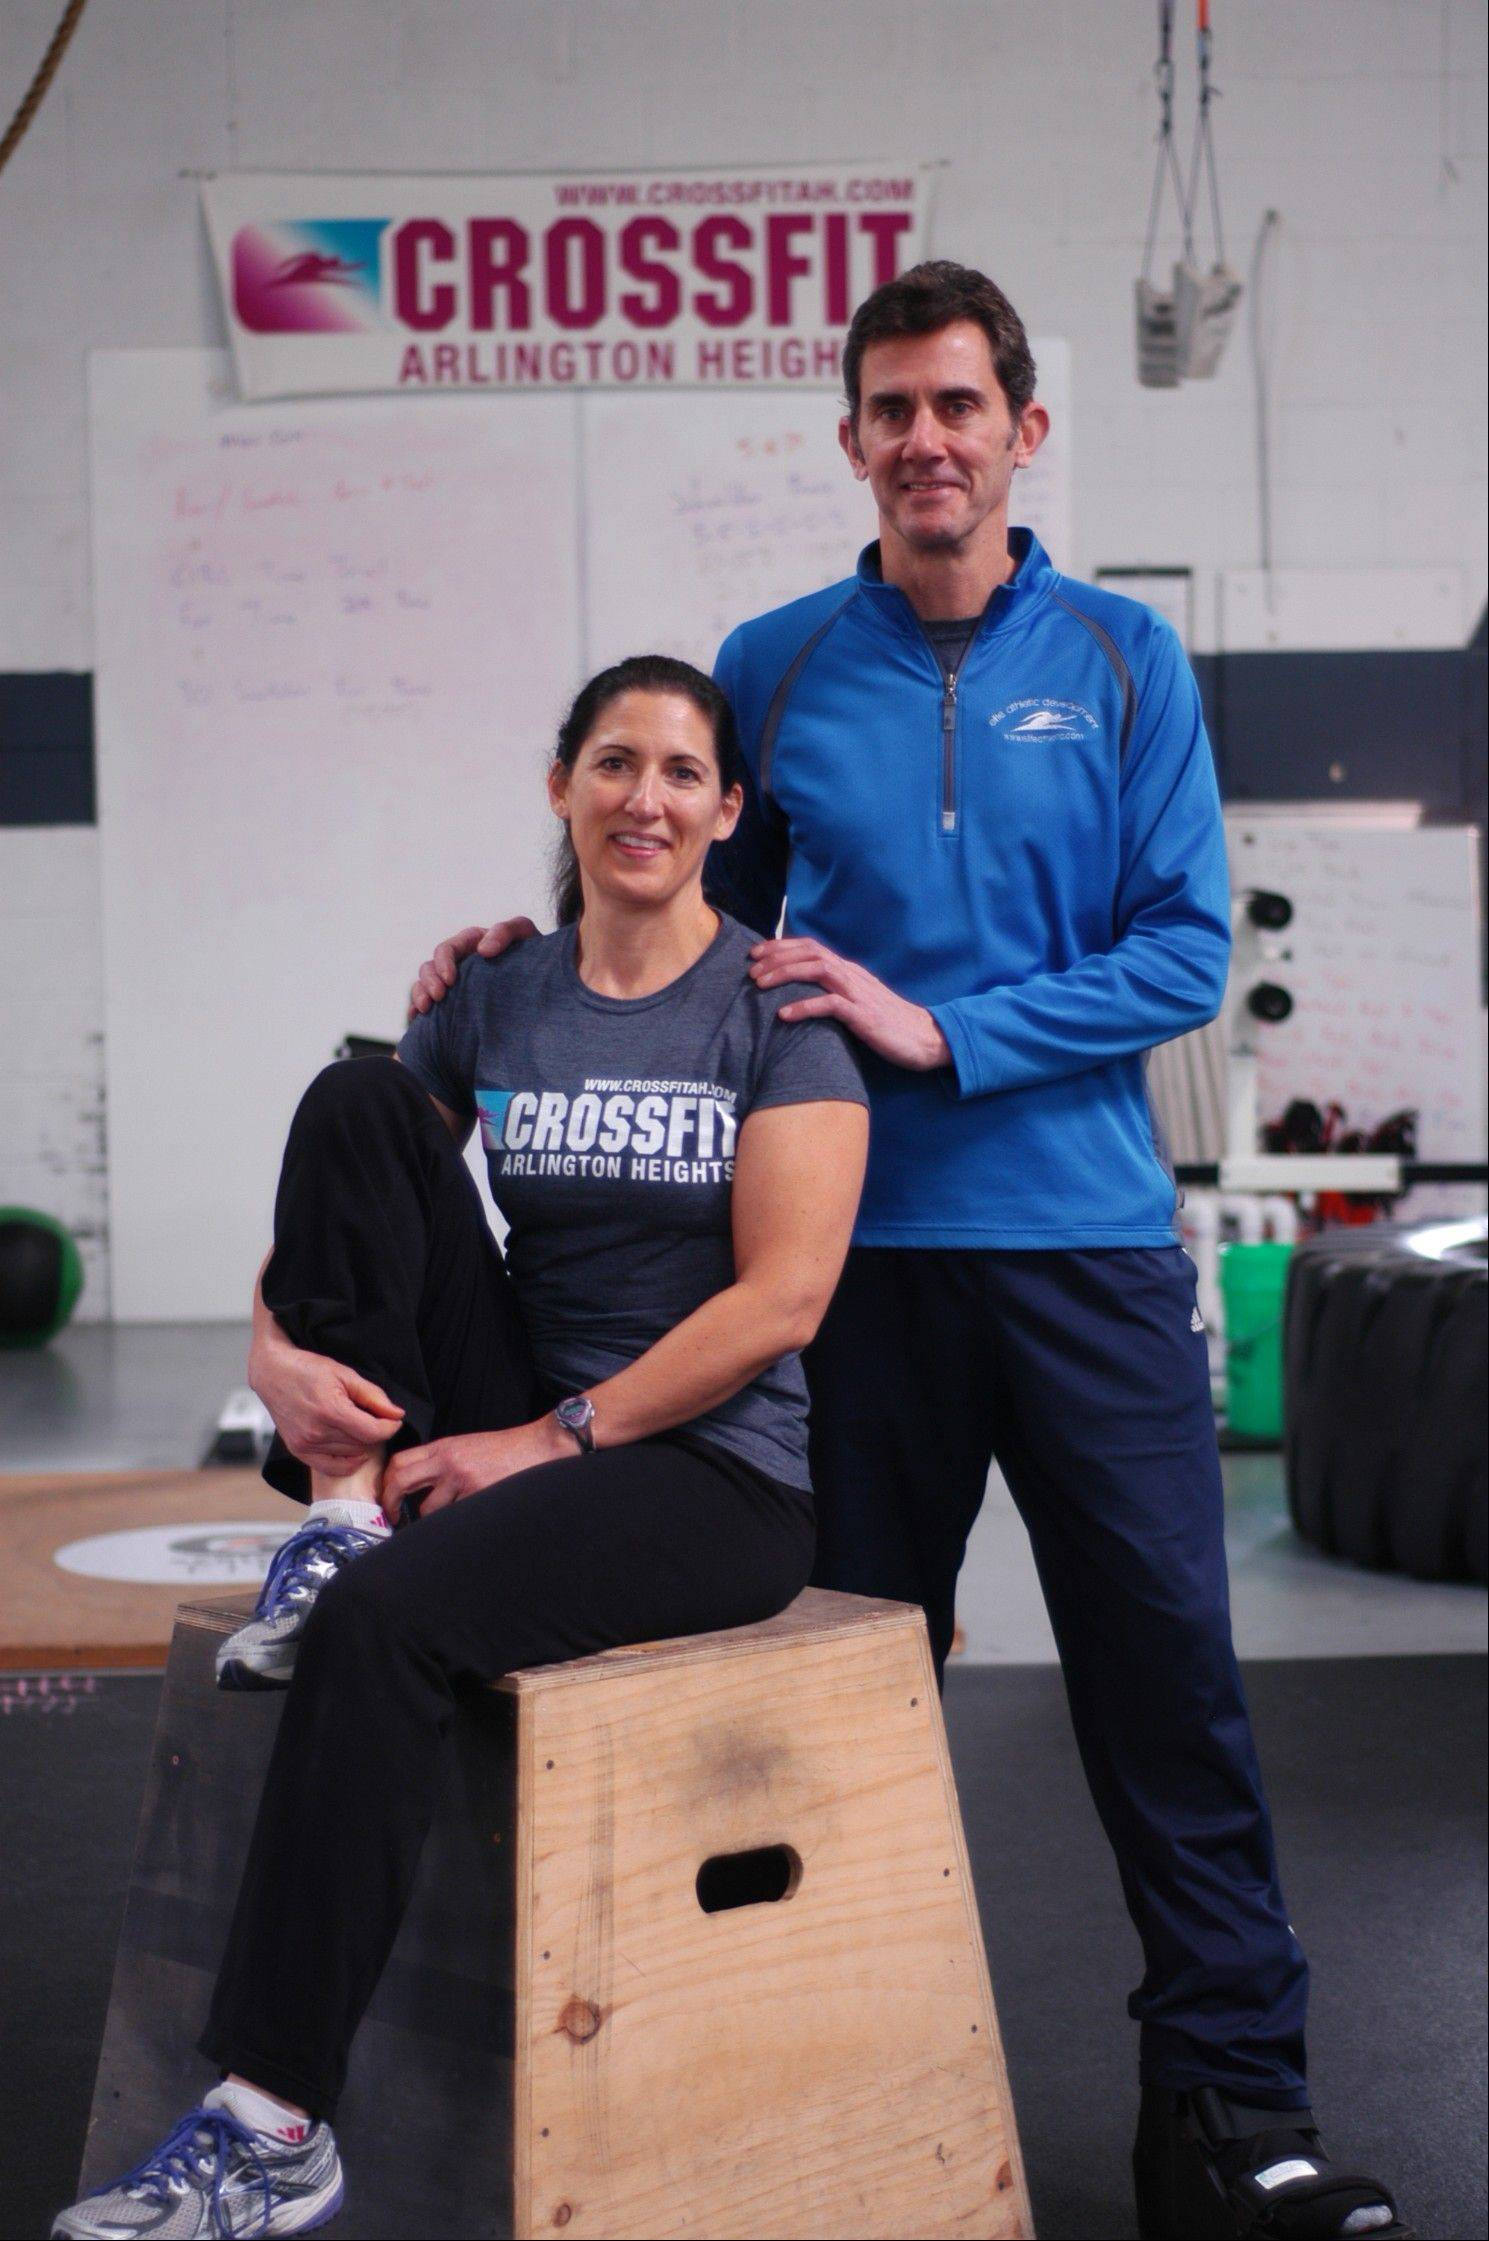 Karen Stoychoff Inman and Jim Inman own and operate Elite Athletic Development in Arlington Heights.